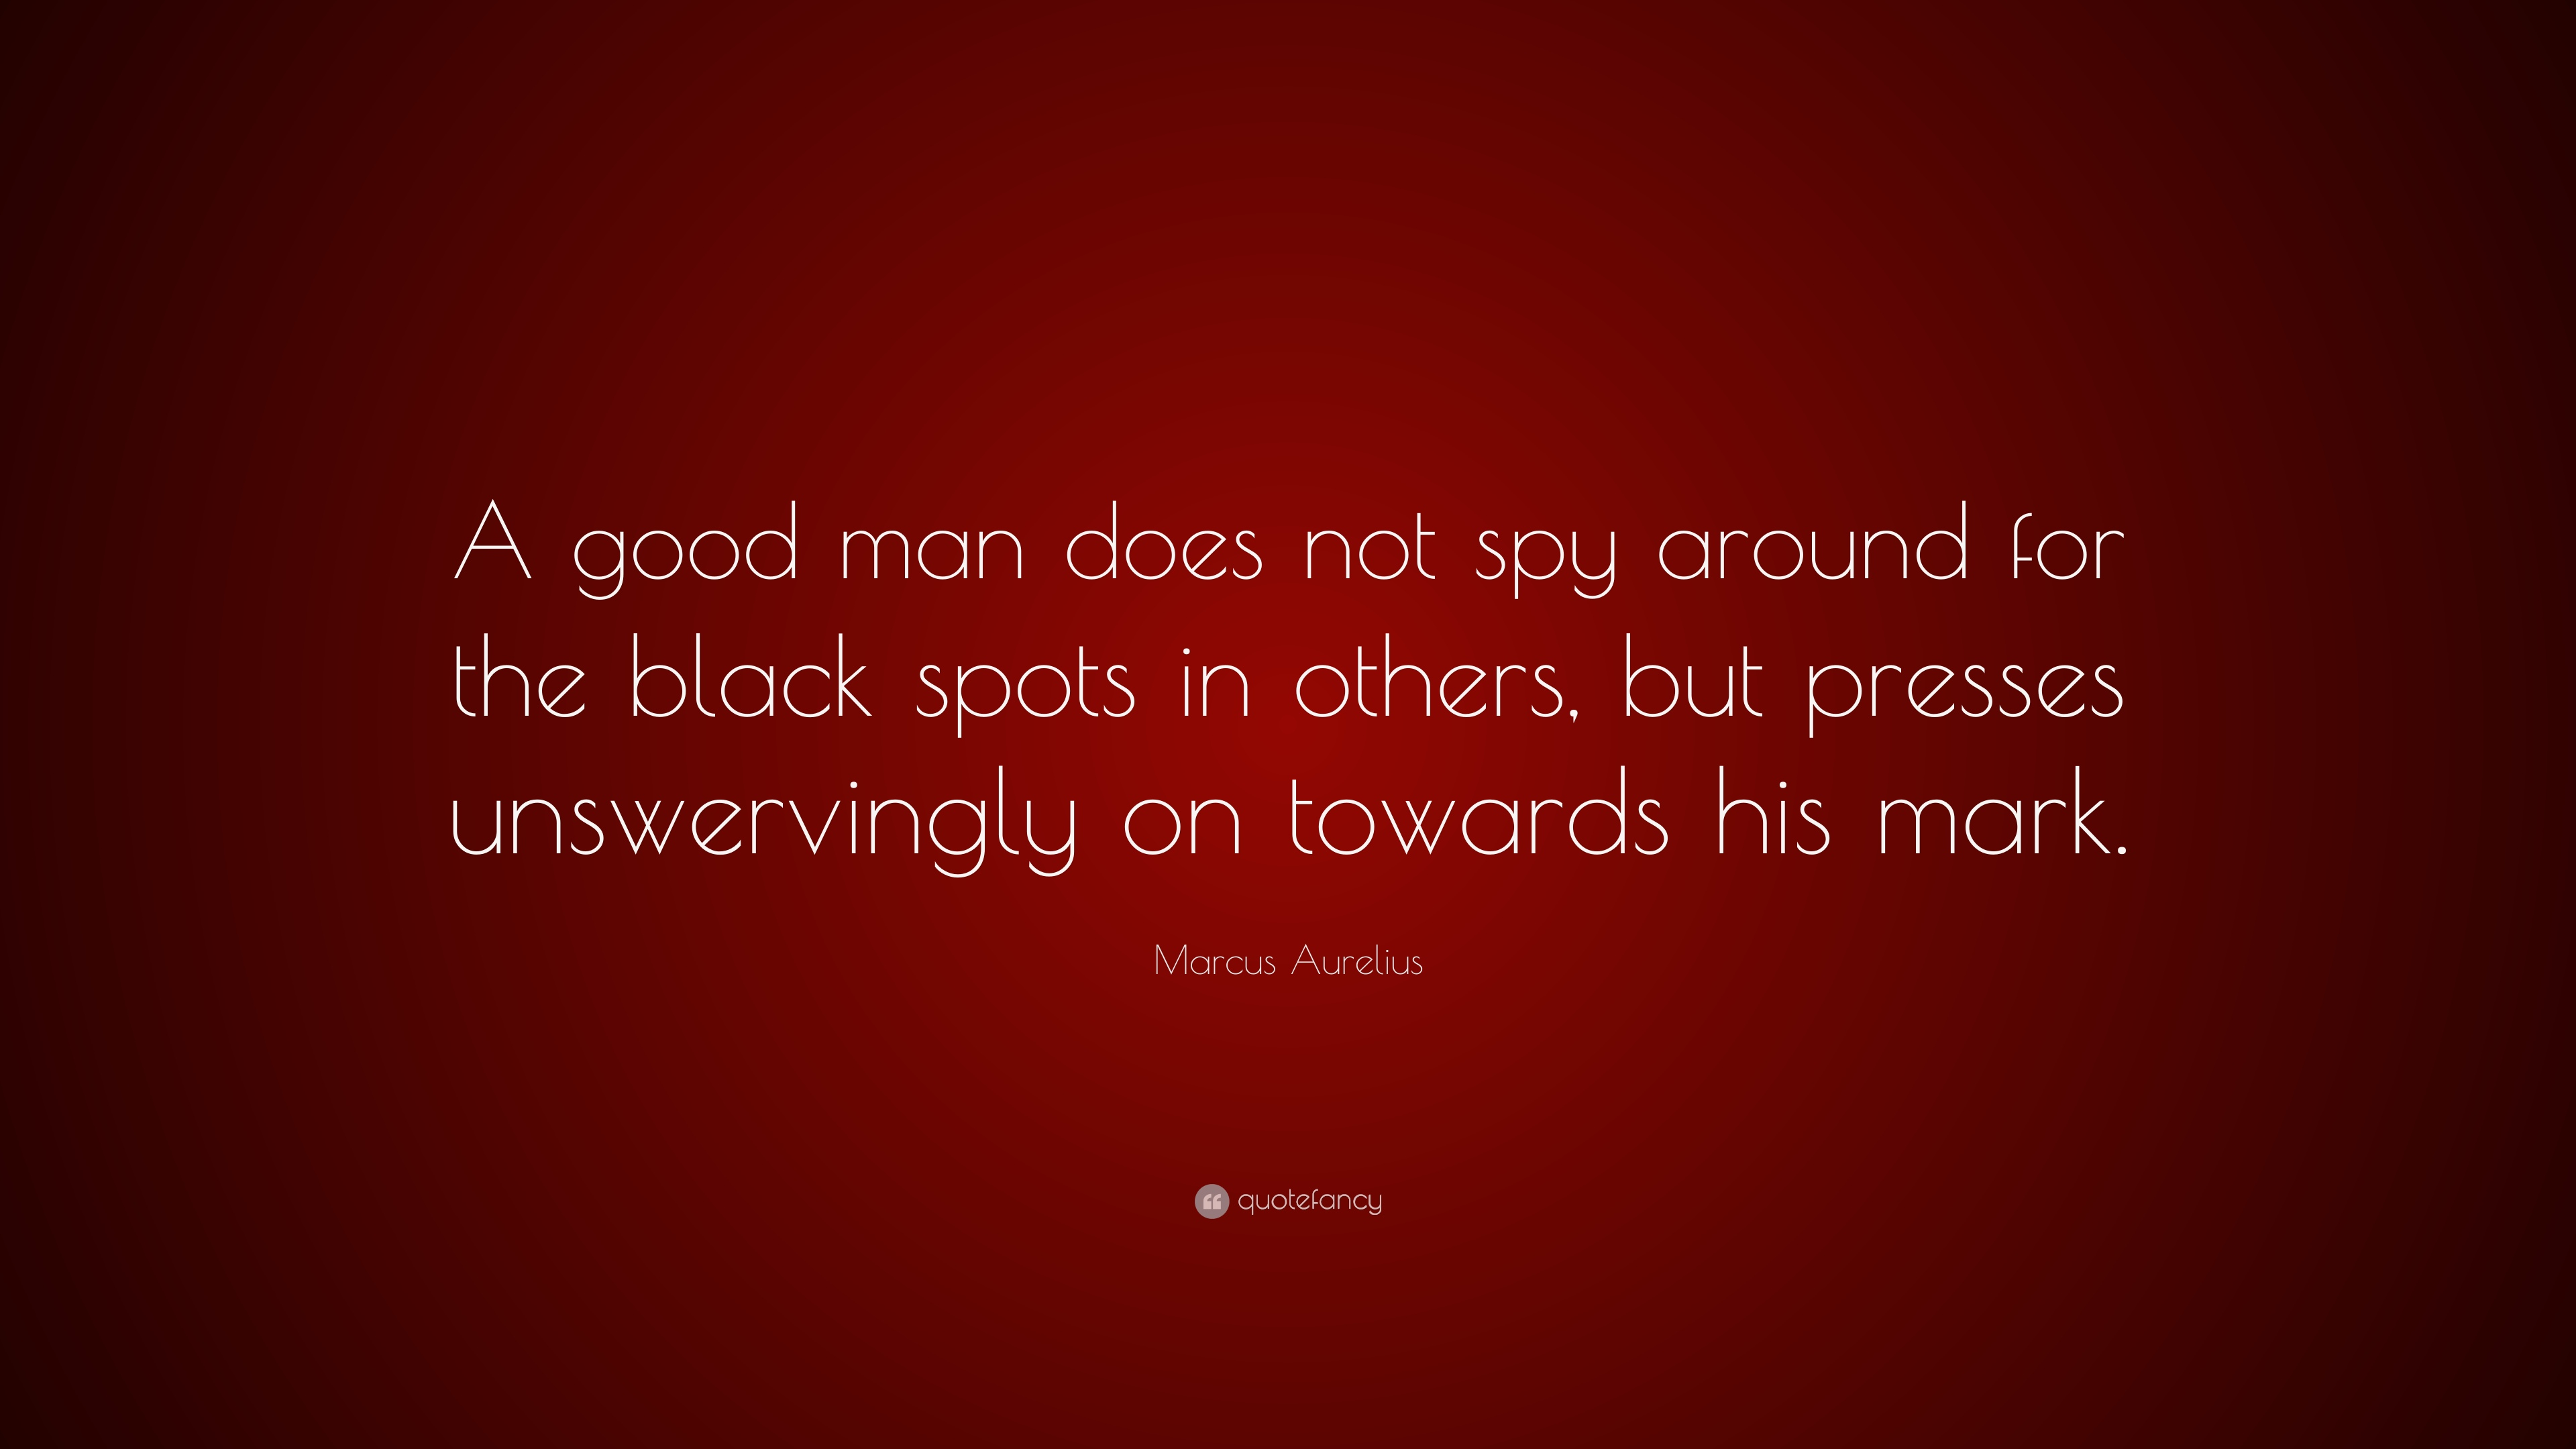 Marcus Aurelius Quote A Good Man Does Not Spy Around For The Black